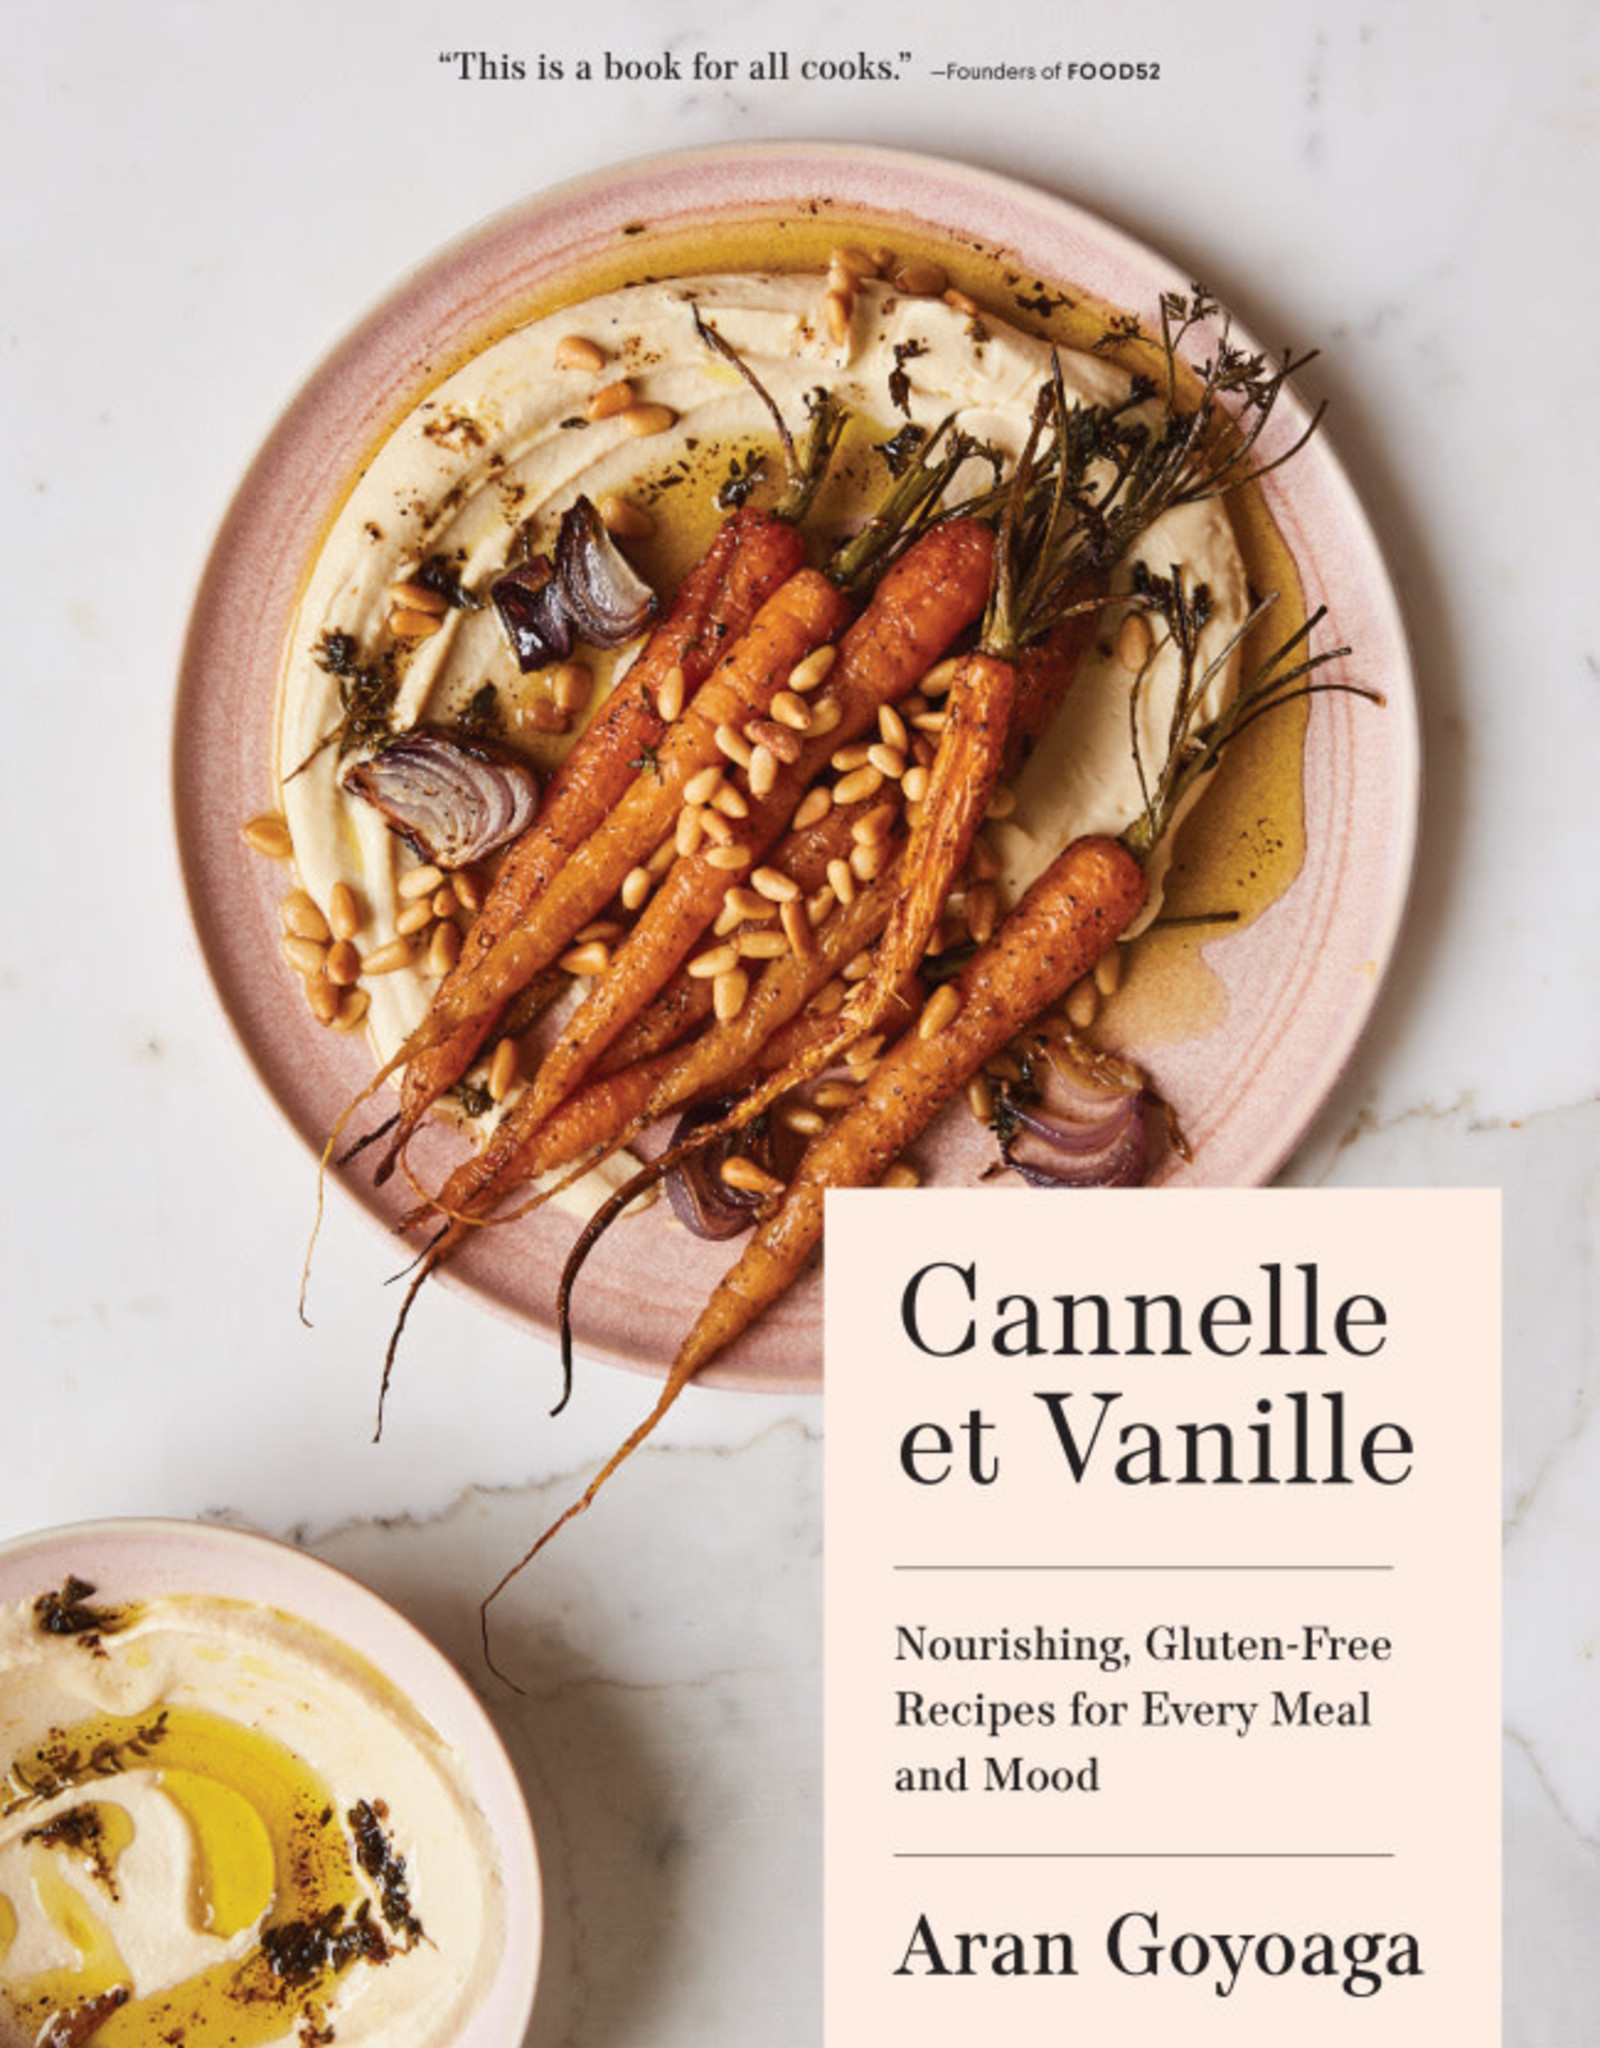 Cannelle at Vanille, Aran Goyoaga